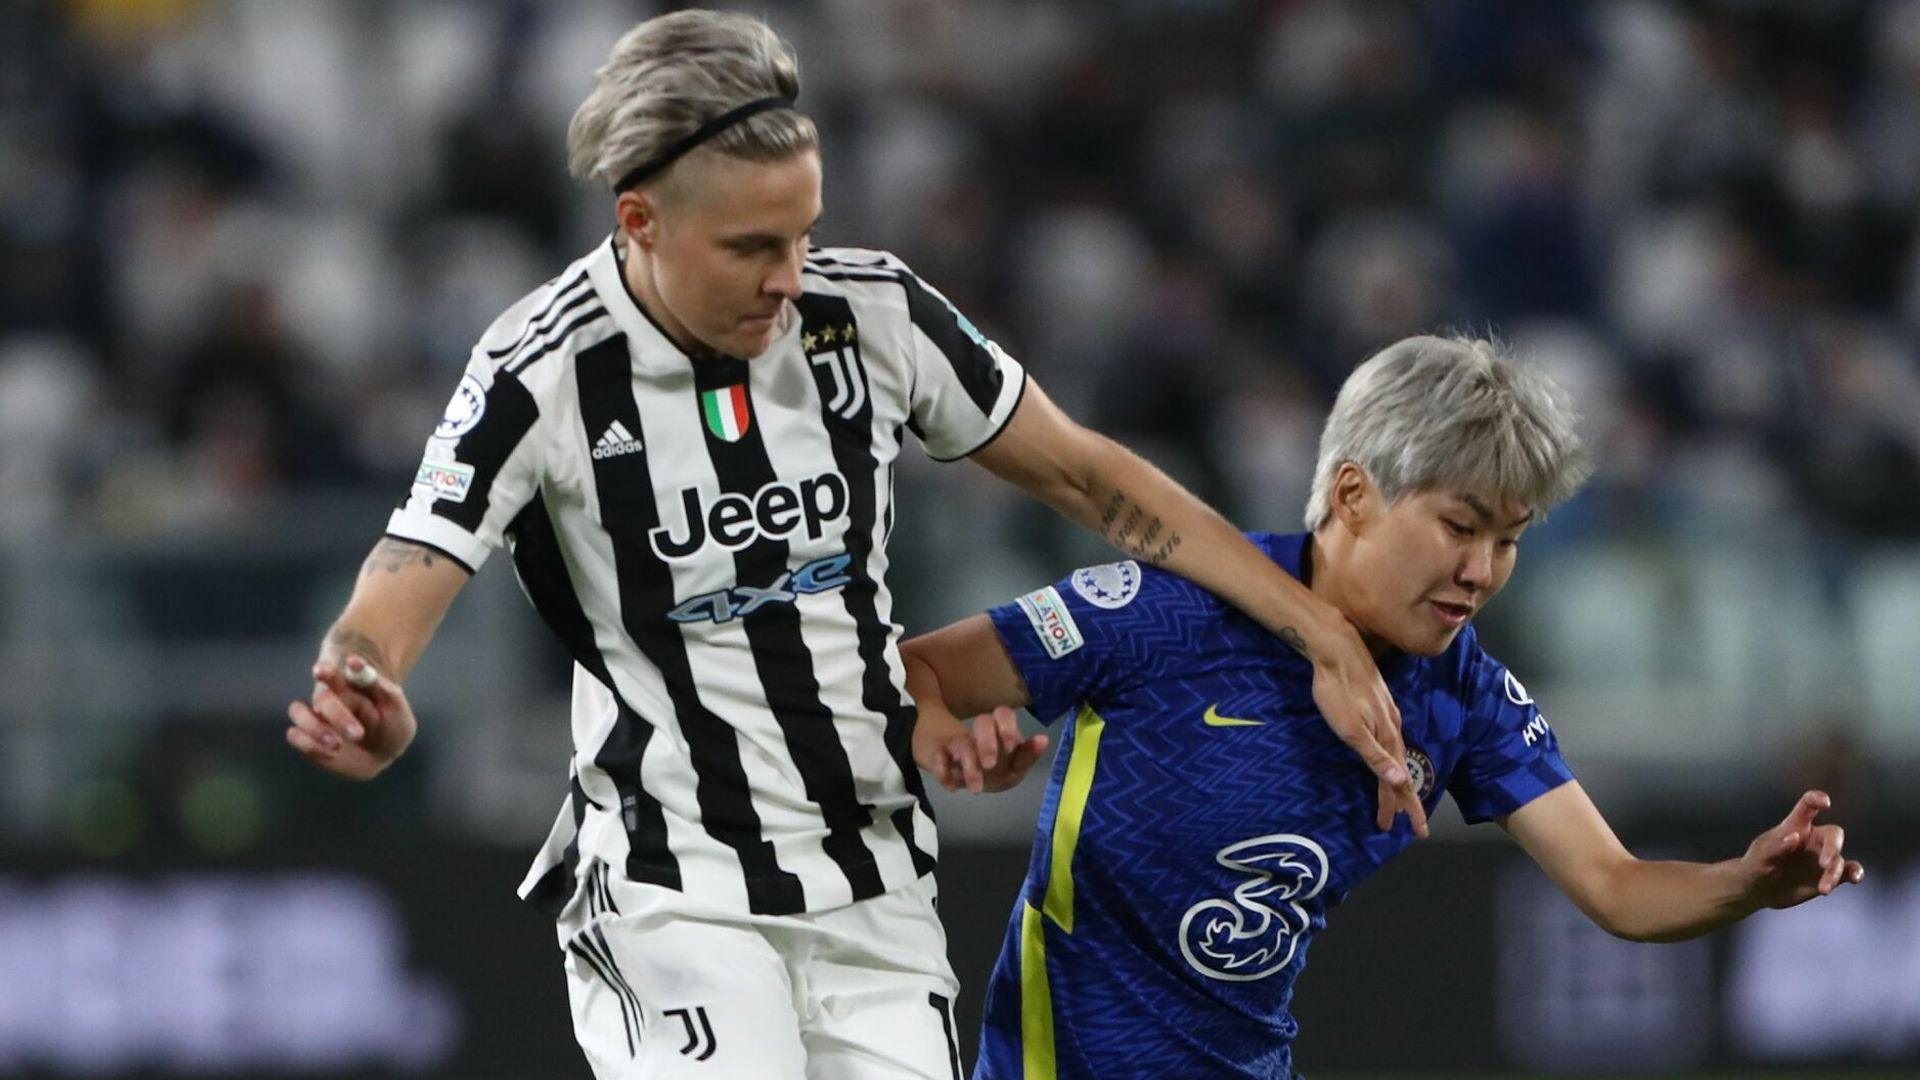 Cuthbert fires Chelsea Women ahead in Turin LIVE!